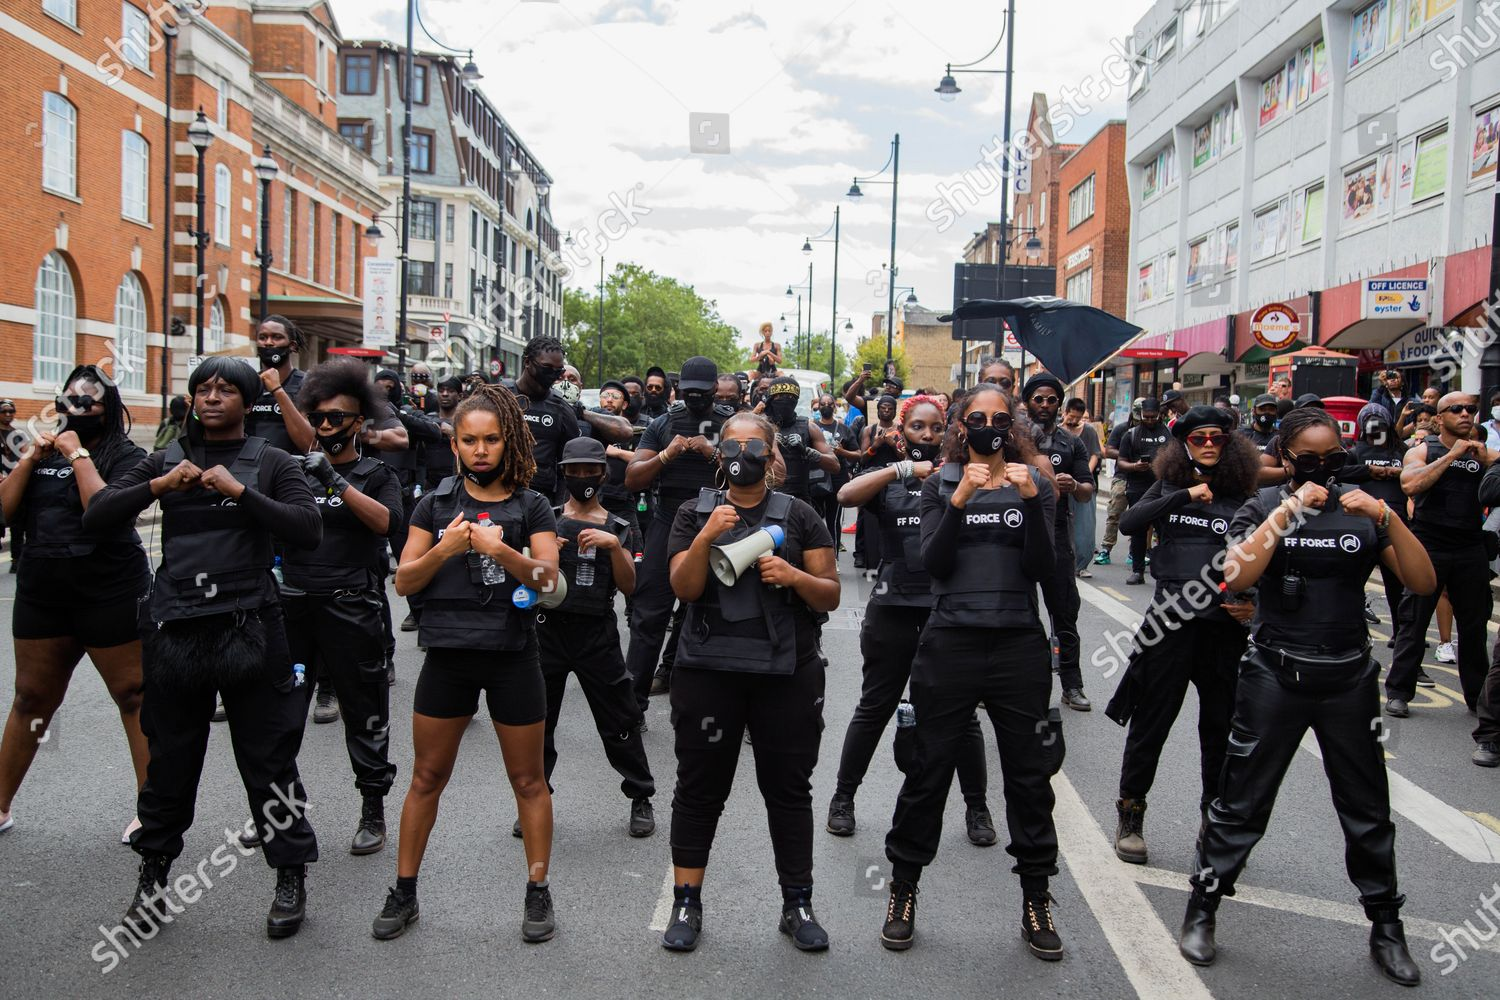 Nuits d'émeutes - Page 9 Annual-african-emancipation-day-in-london-uk-shutterstock-editorial-10730518b